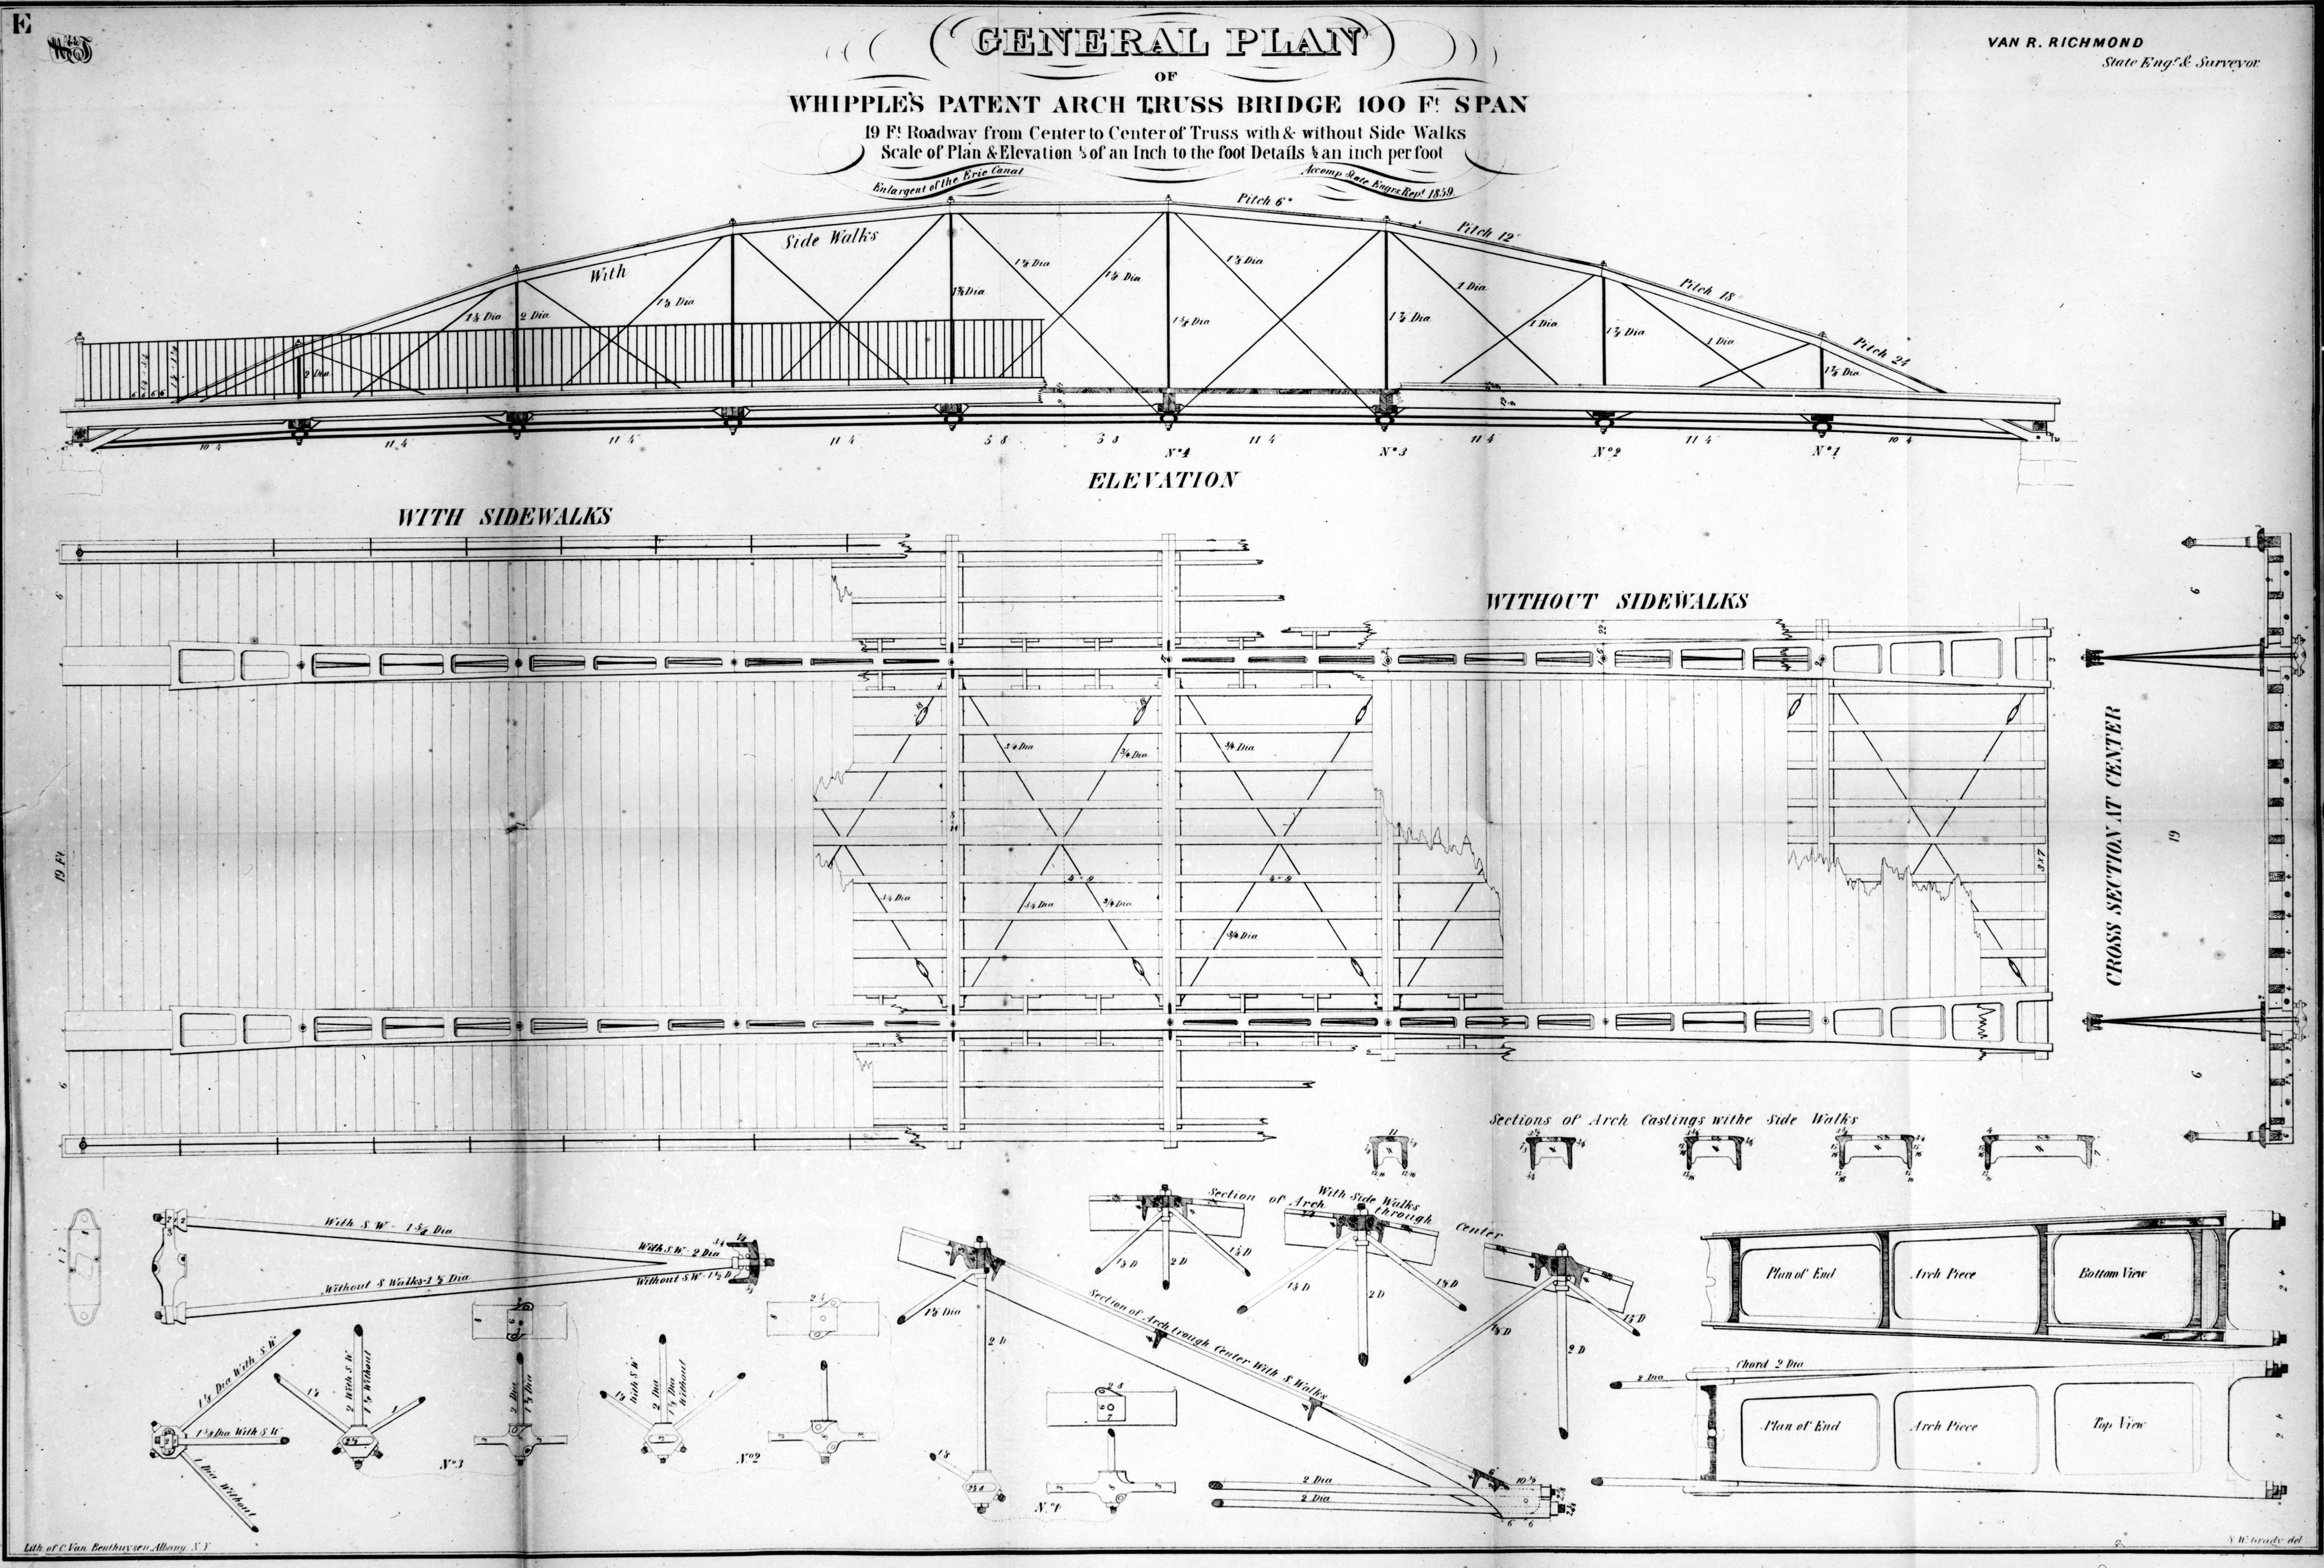 West point bridge design sample bridge - The Normans Kill Ravine Bridge Is One Such Example Having Been Built By An Unaffiliated Bridge Builder Whipple Was Almost Certainly Not Personally